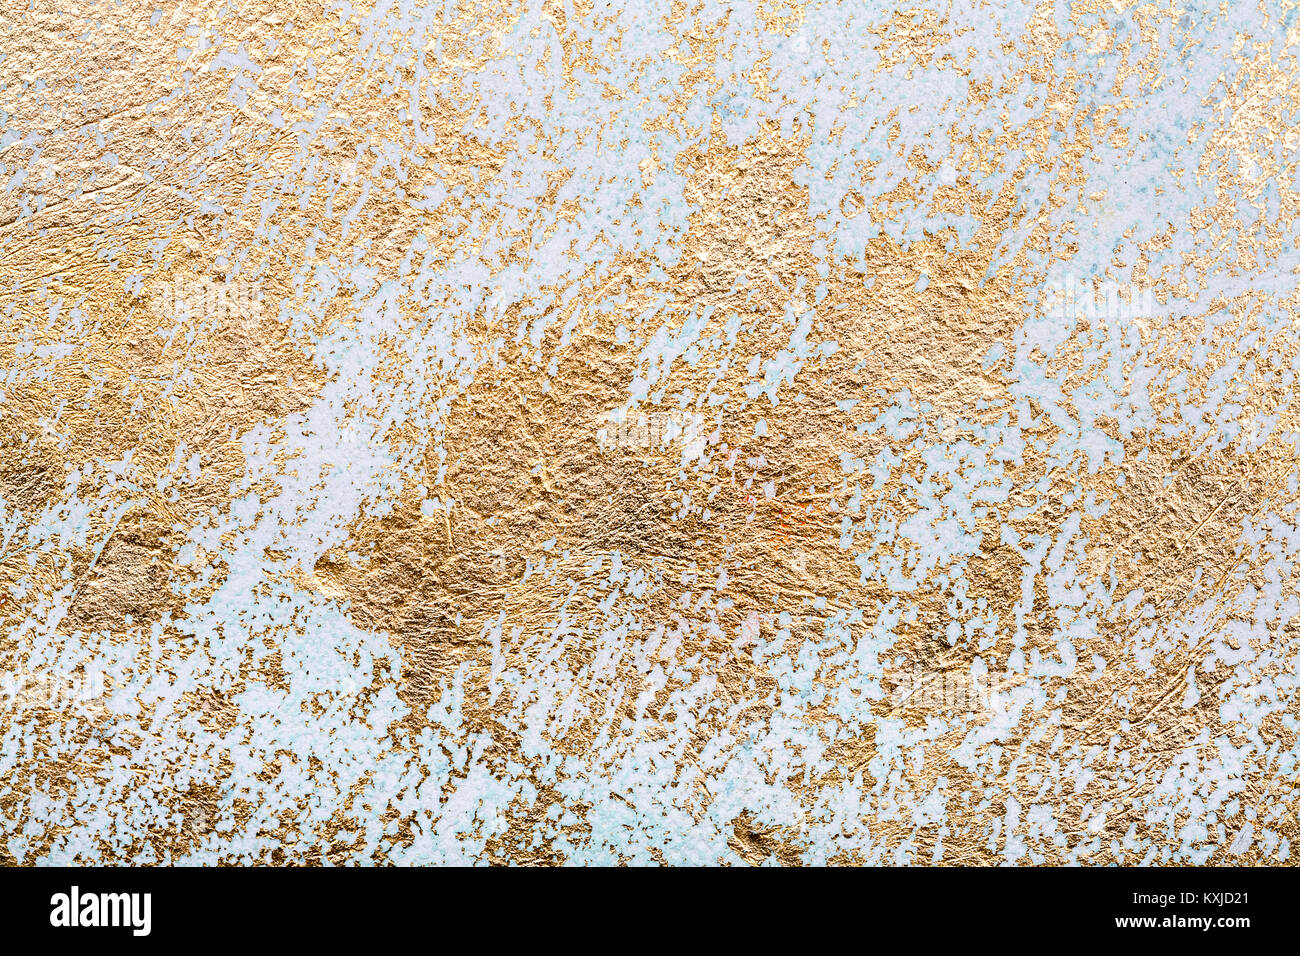 White and golden messy wall stucco texture background Decorative